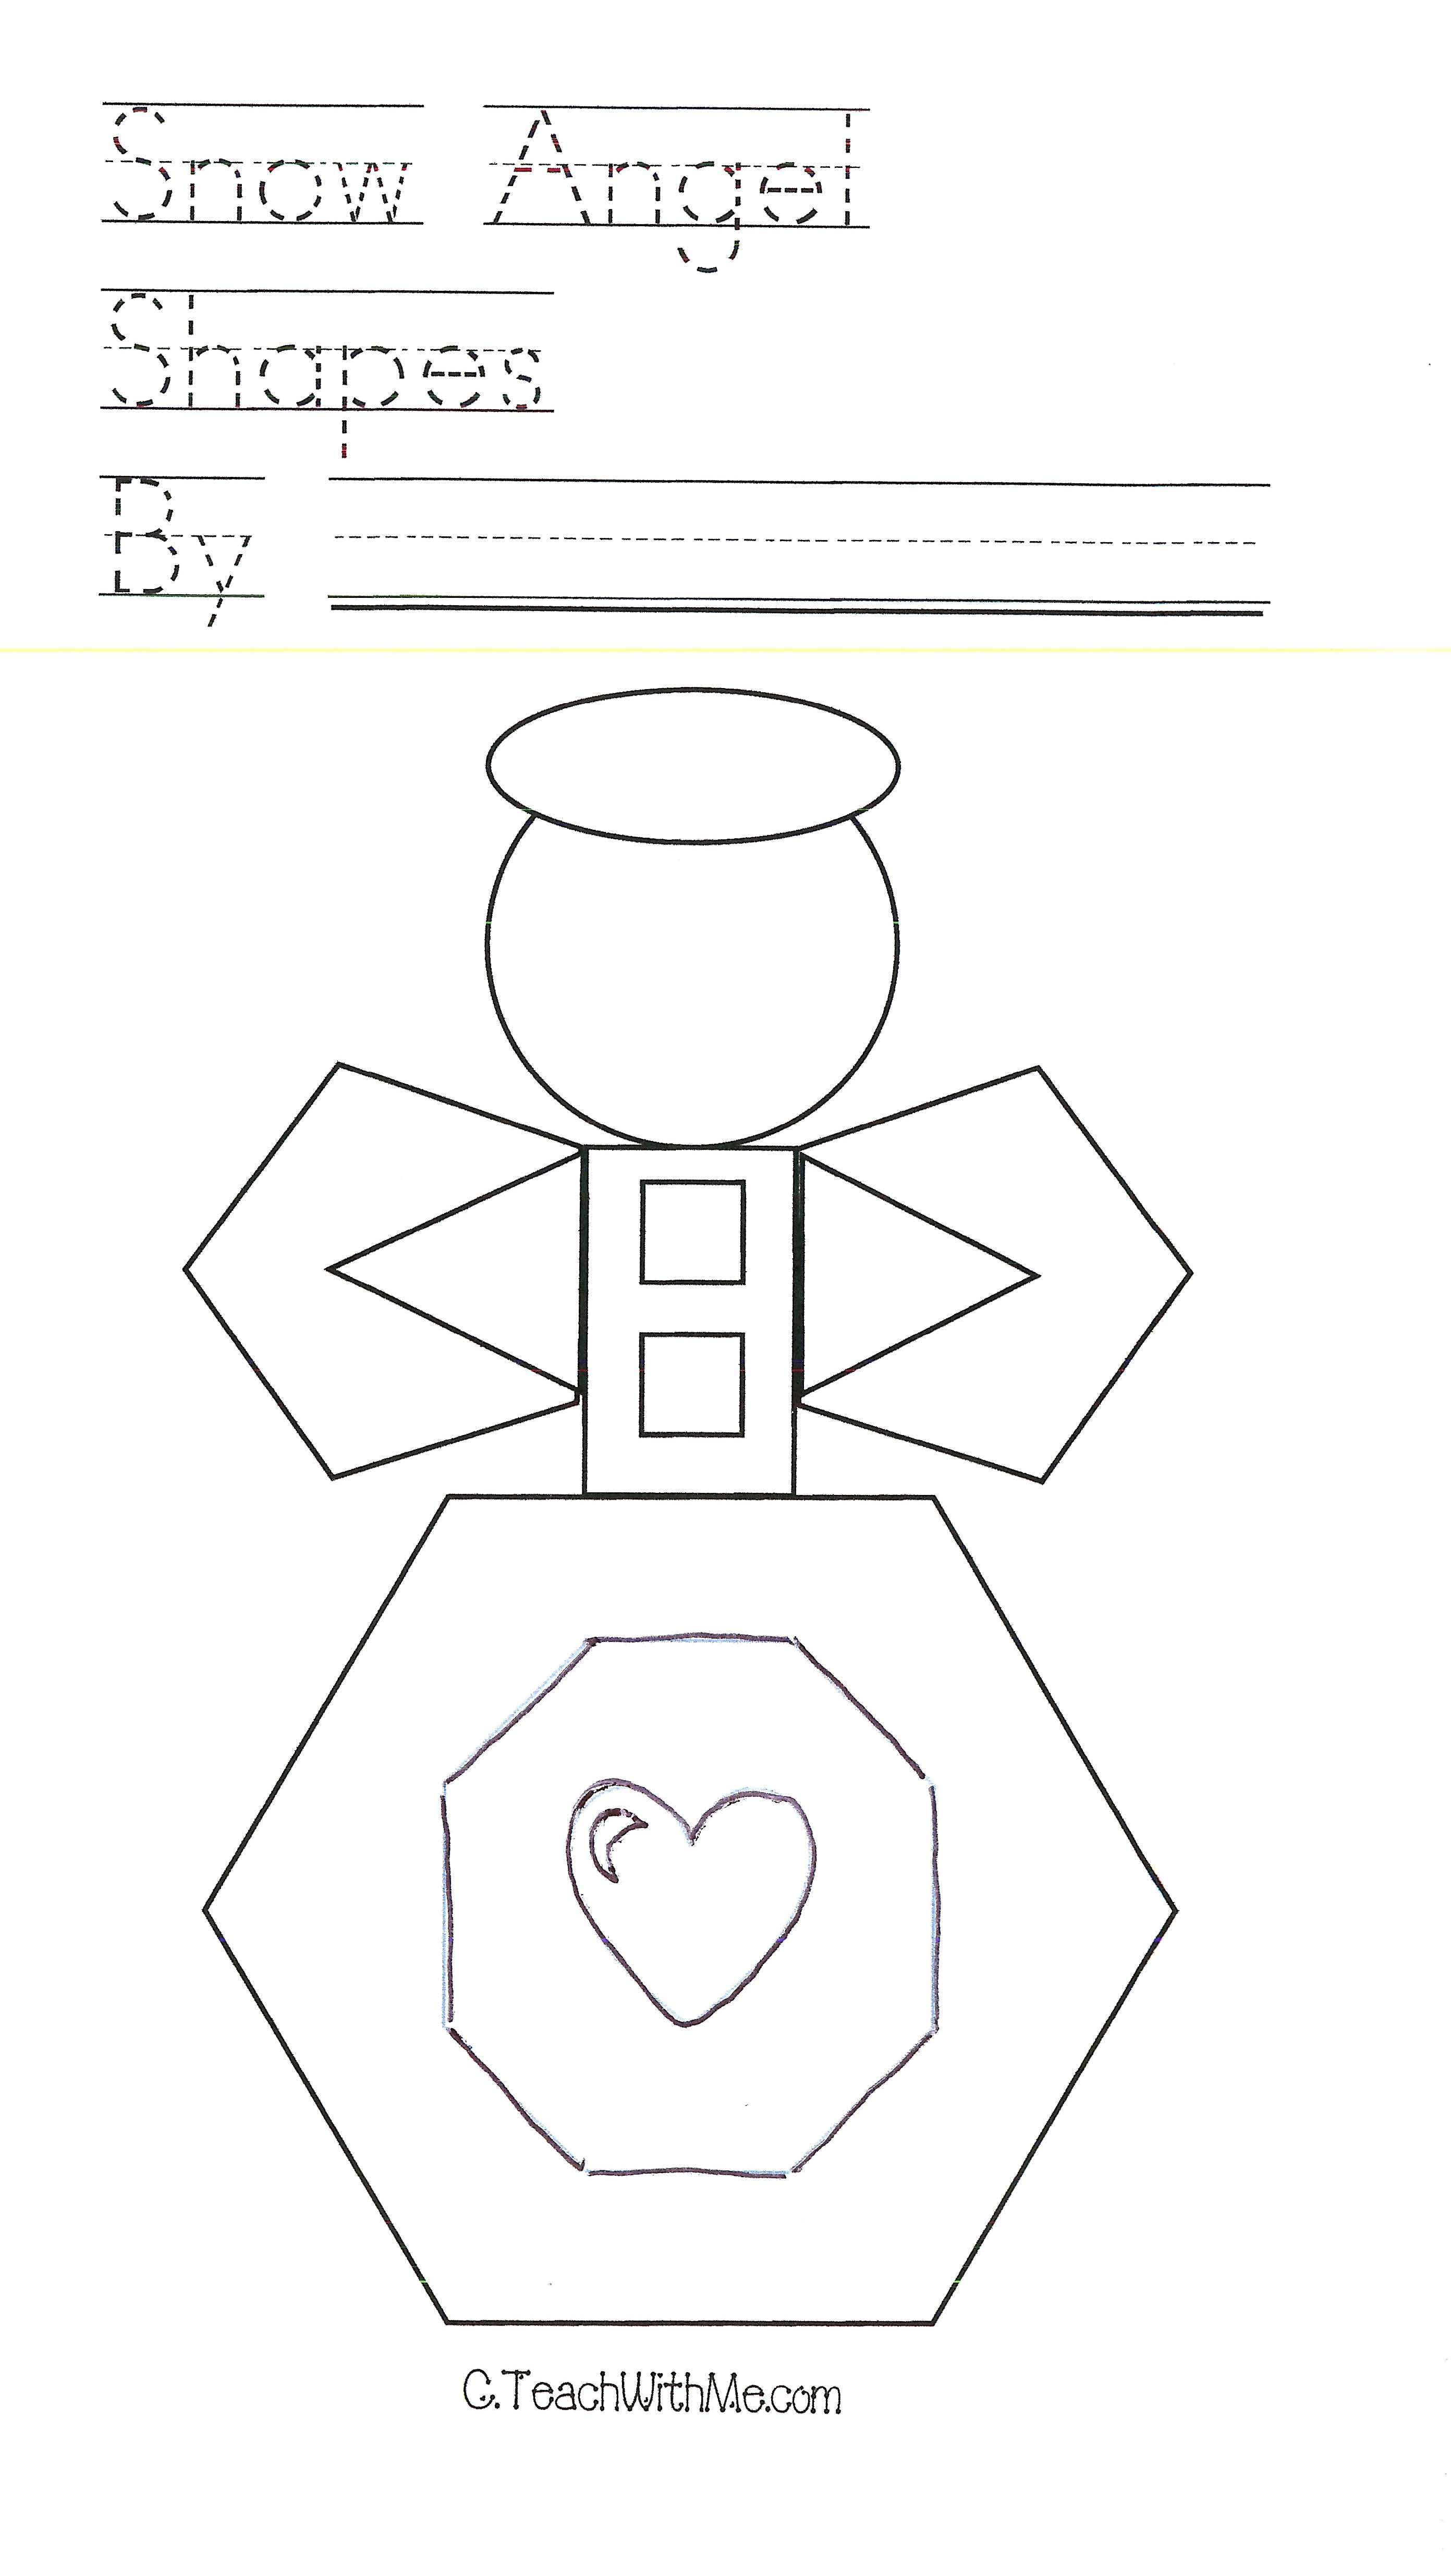 FREE common core lessons, shapely angels, snow angels, shape activities, hexagon, octagon, pentagon activities, shape booklet, common core lessons for kindergarten, common core lessons for 1st grade,